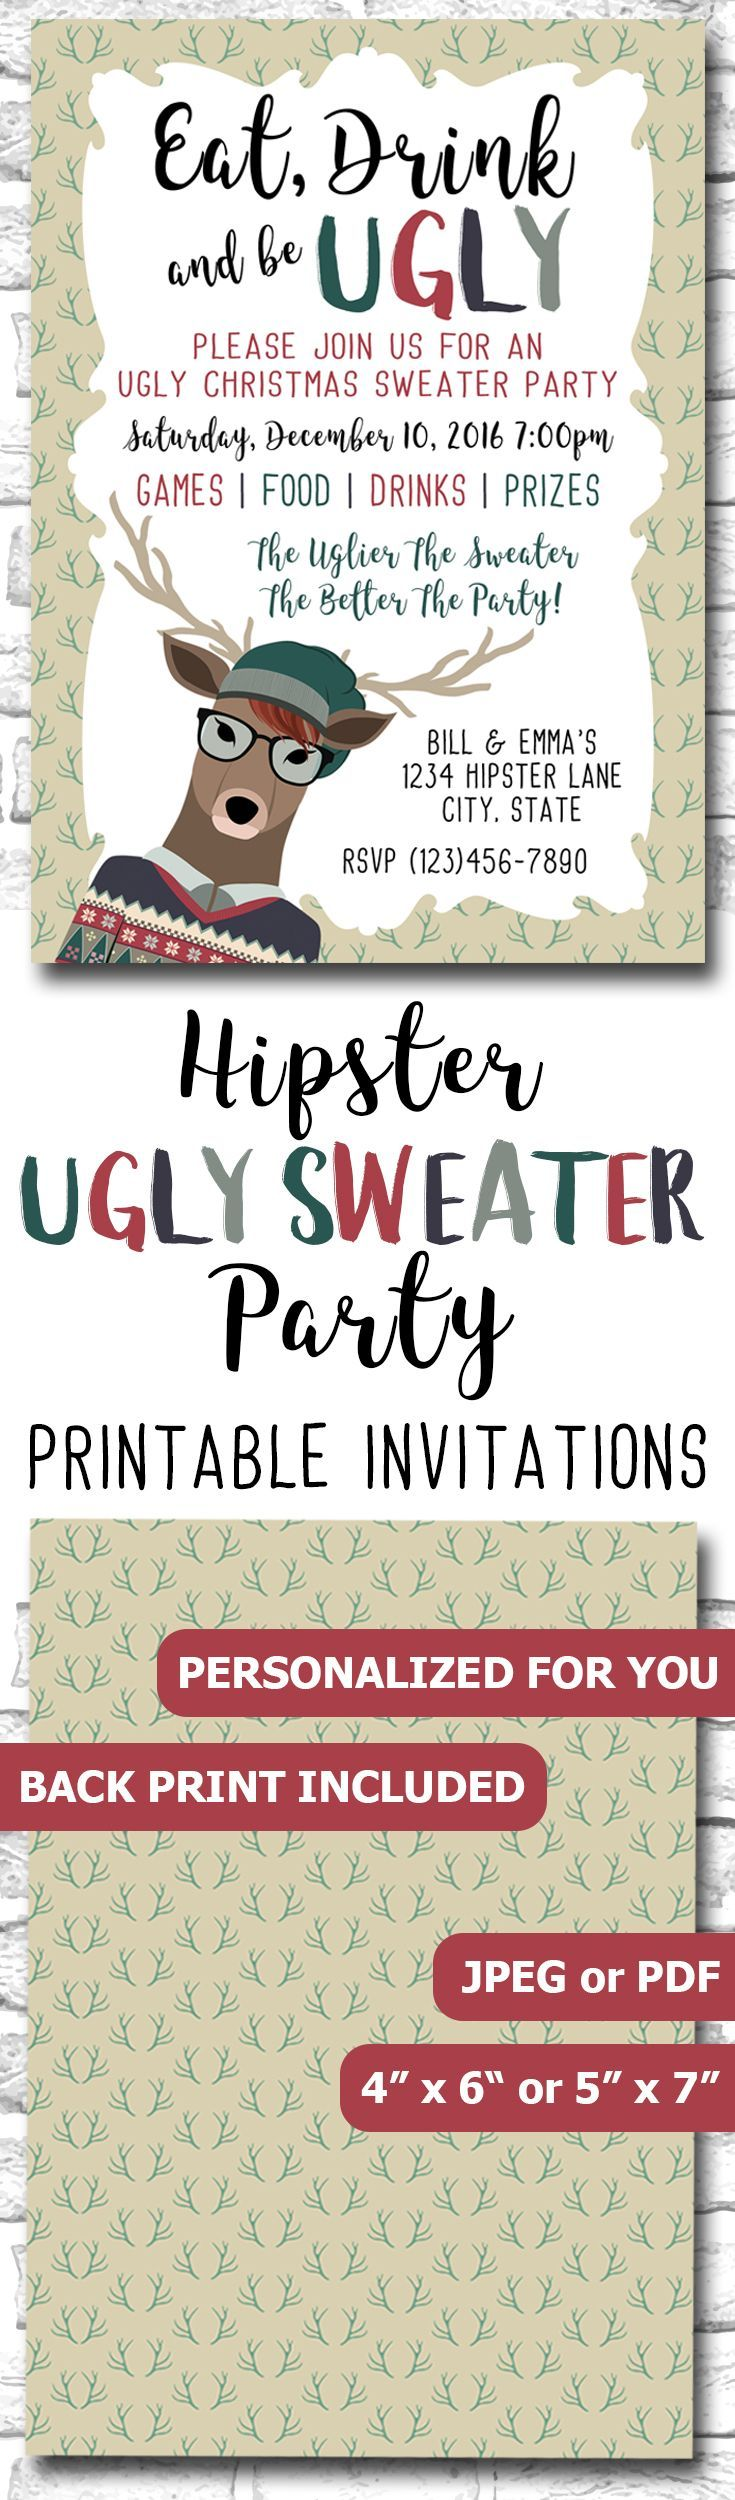 Hipster Ugly Christmas Sweater Party Invitation For Geeks, Nerds And Hipsters, Eat Drink And Be Ugly Invite https://www.etsy.com/ca/listing/476426530/hipster-ugly-christmas-sweater-party